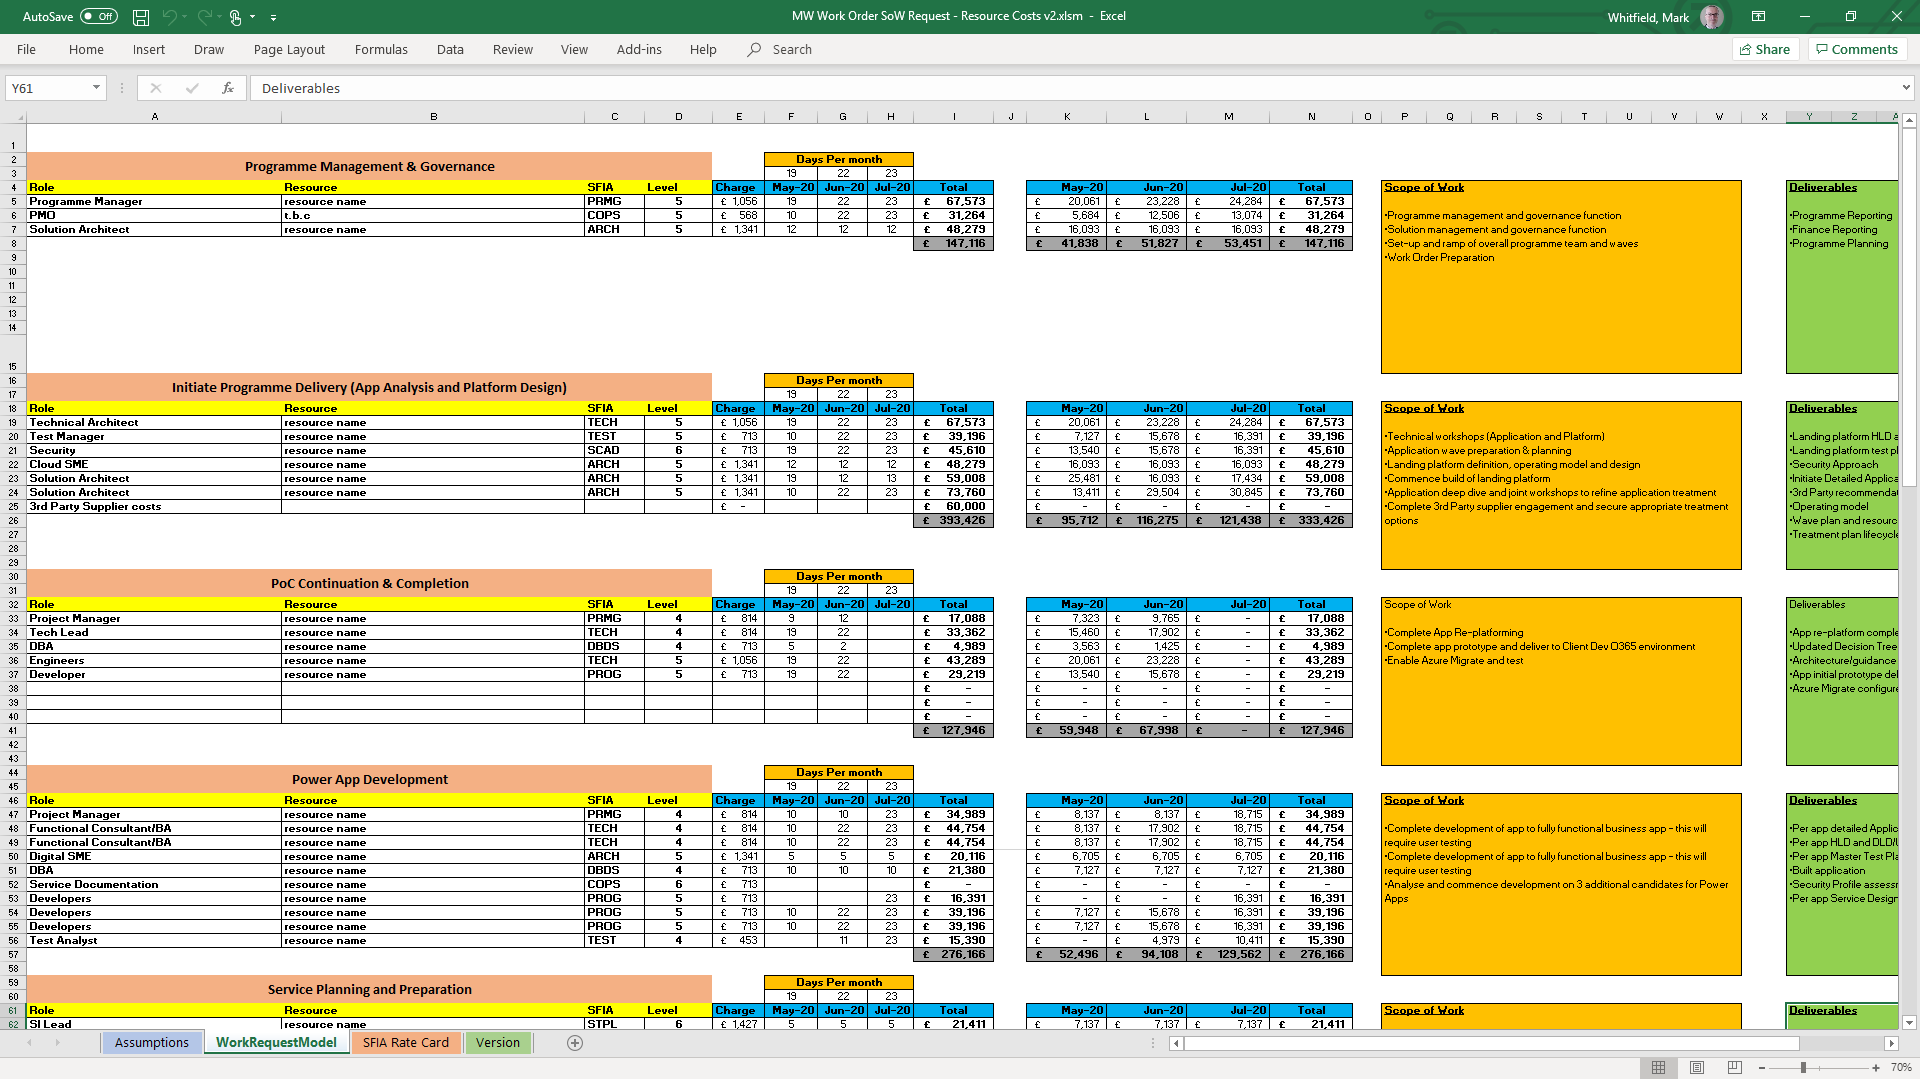 Agile Project Plan Template Excel from markwhitfieldcom.files.wordpress.com